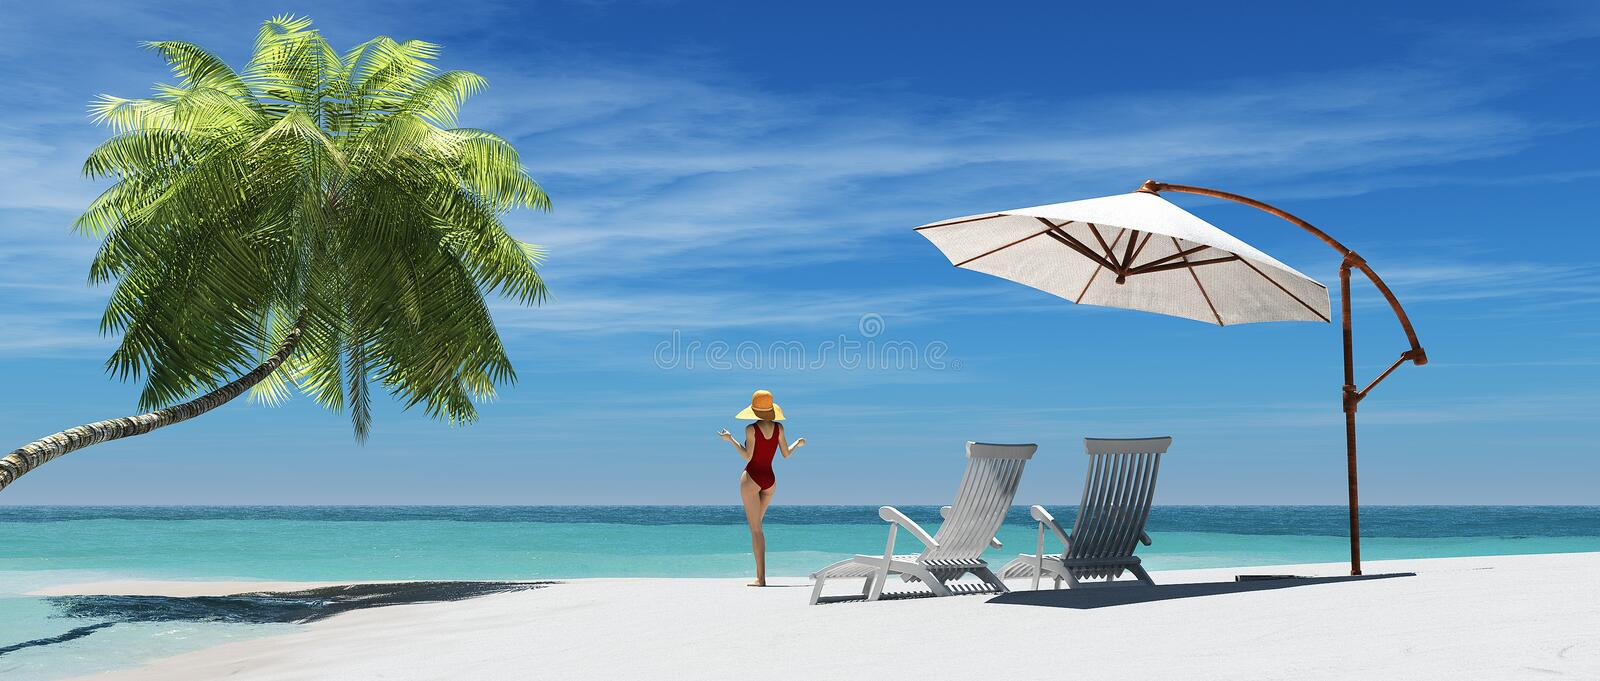 Two beach chairs royalty free illustration